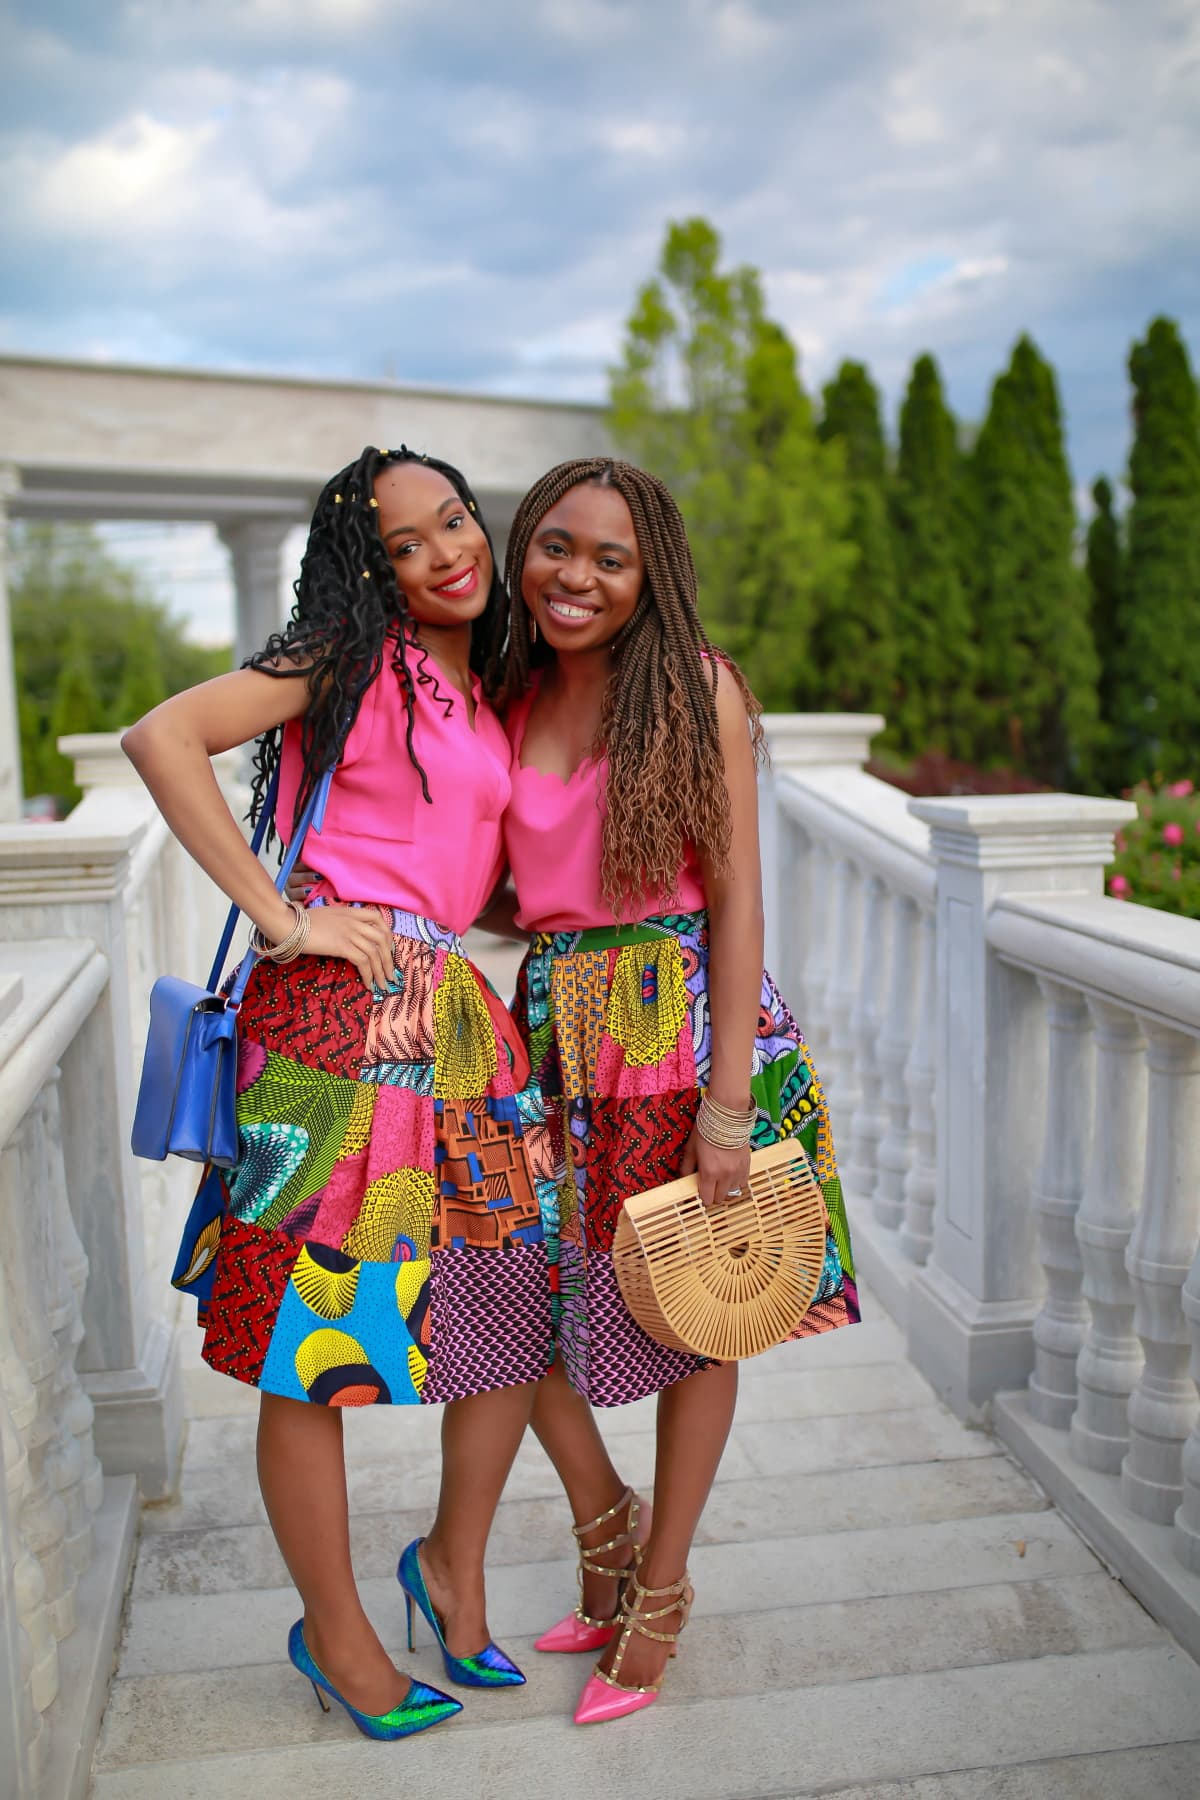 This is the only skirt you'll want to wear this year. This Amazon ankara skirt definitely has me excited for all the fun ways I can restyle this one ankara piece for work, school, church, wedding.. You name it!